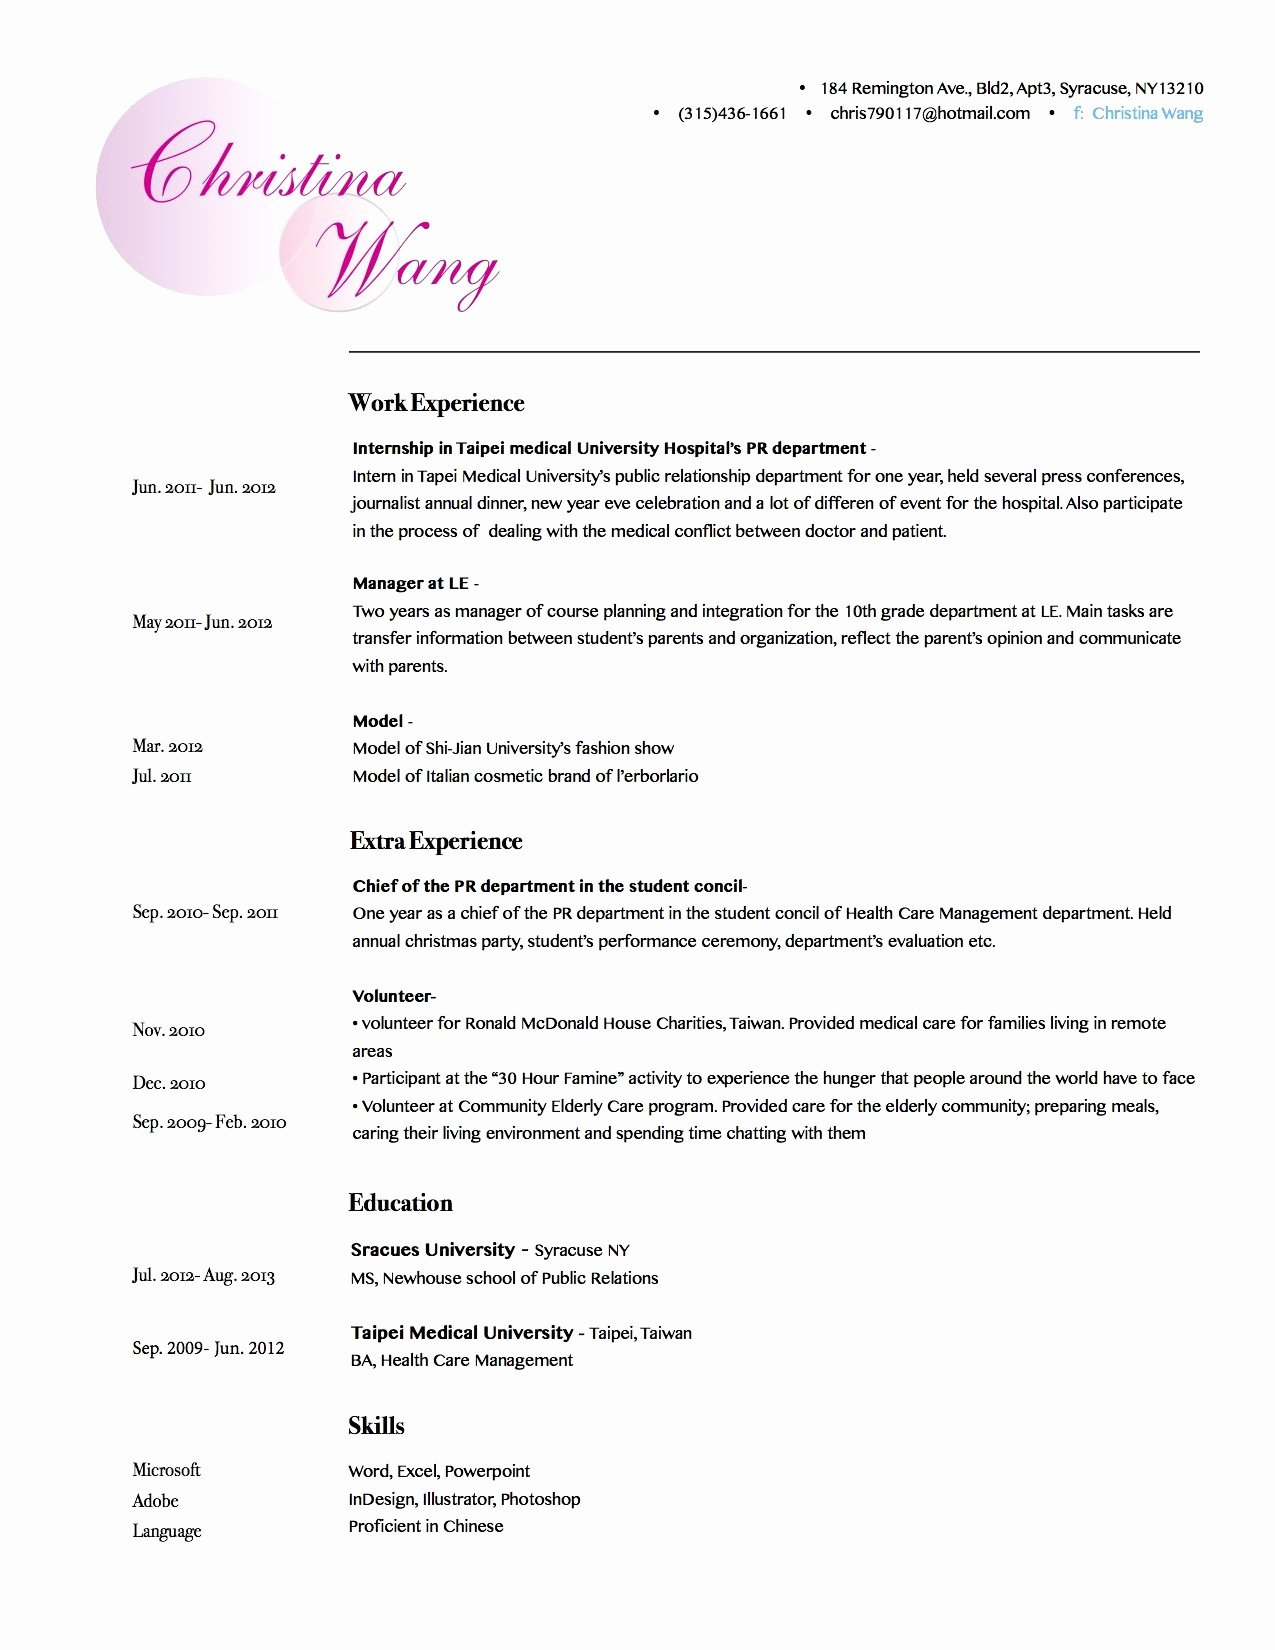 Template for Makeup Artist Resume